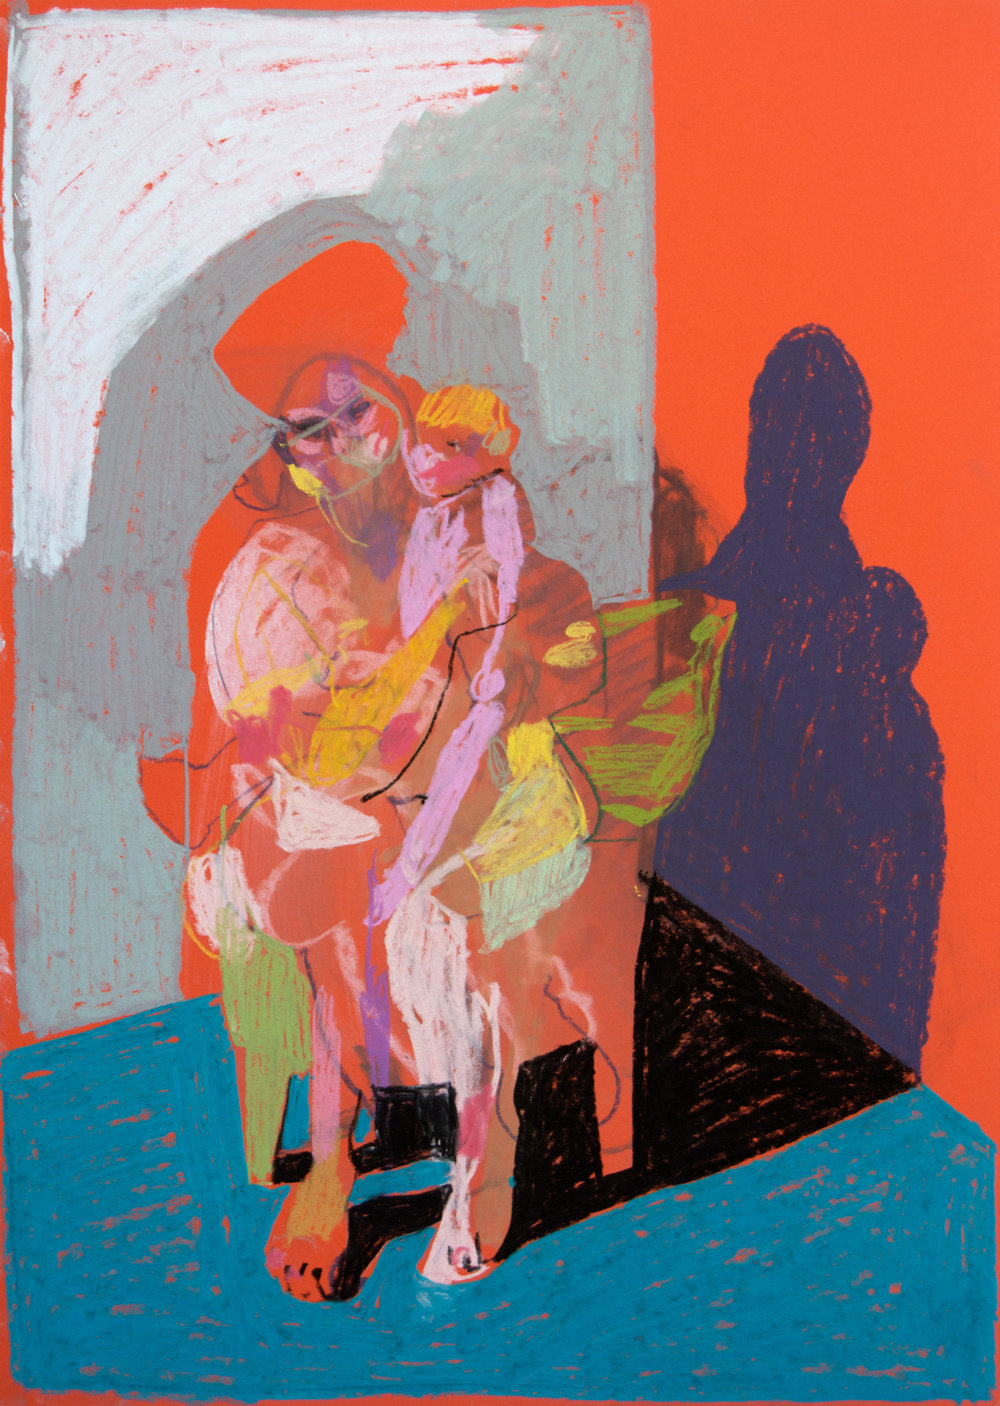 'Mother, model and child on orange with blue ground', 2018, pastel, 42 x 29.7cm, SOLD